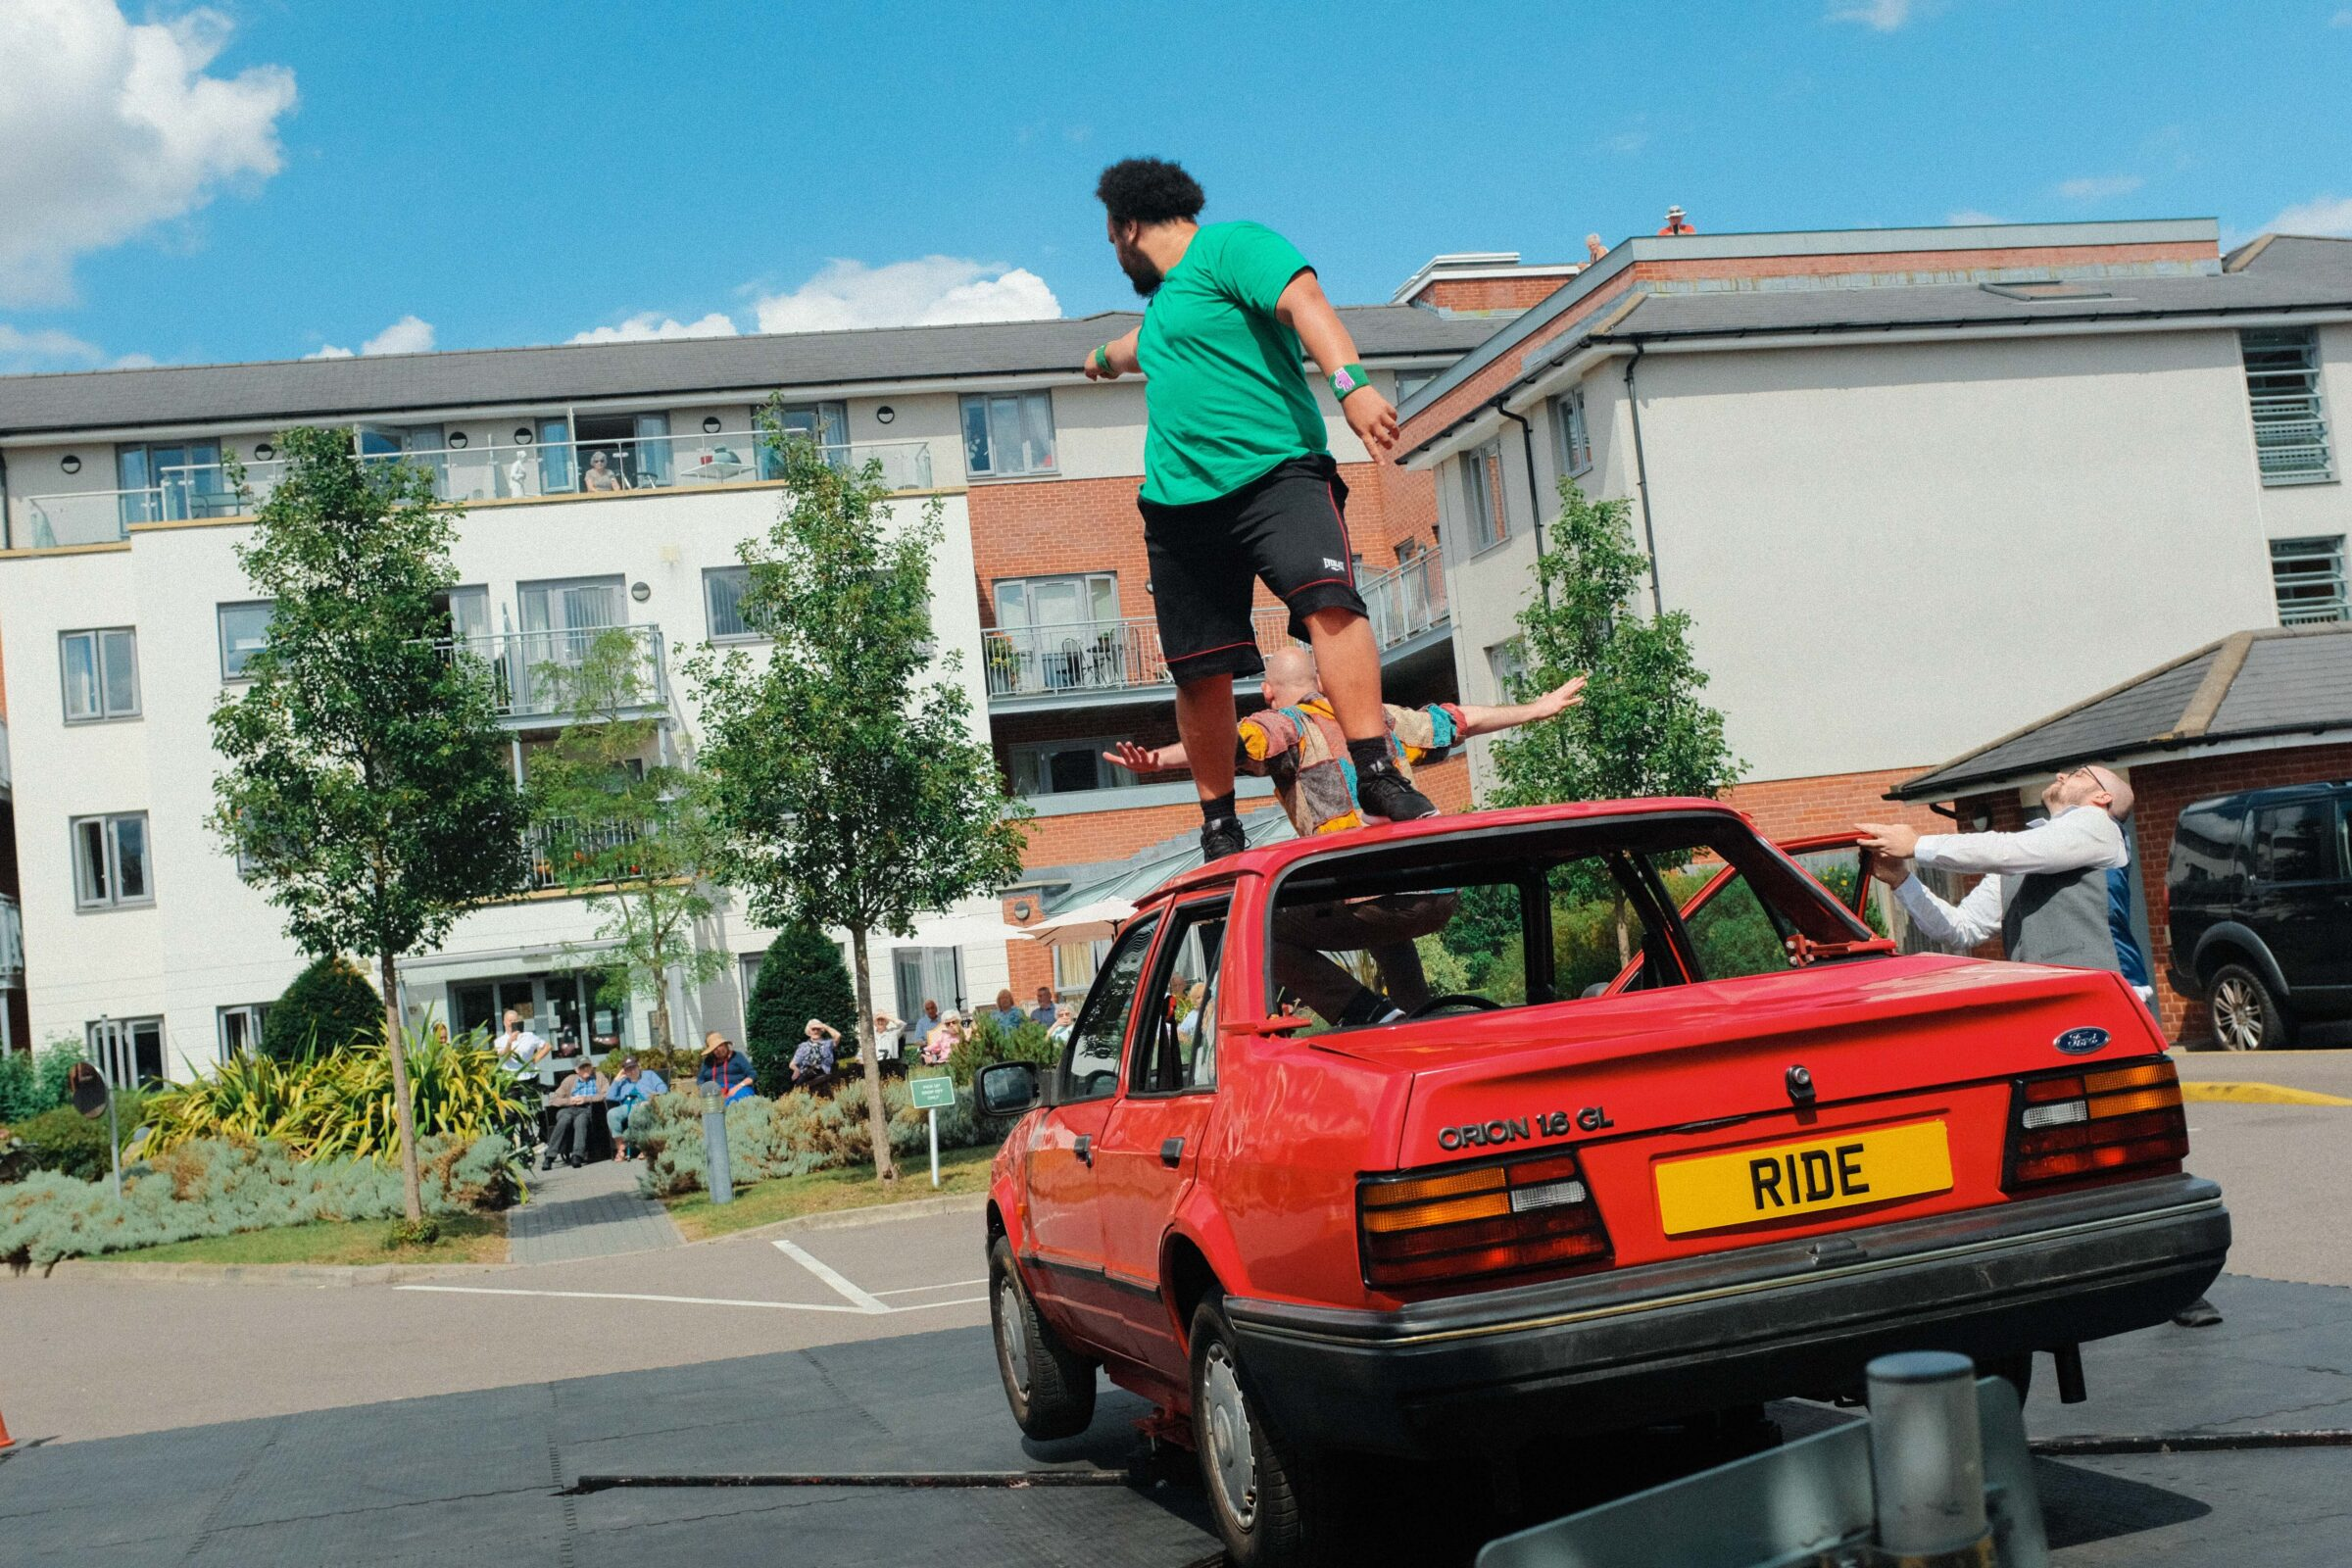 A Black Caribbean and white mixed heritage man with a black beard and short curly black hair in a green t shirt and black shorts stands on top of red Ford Orion car in a carpark, pointing towards a building with trees around it.